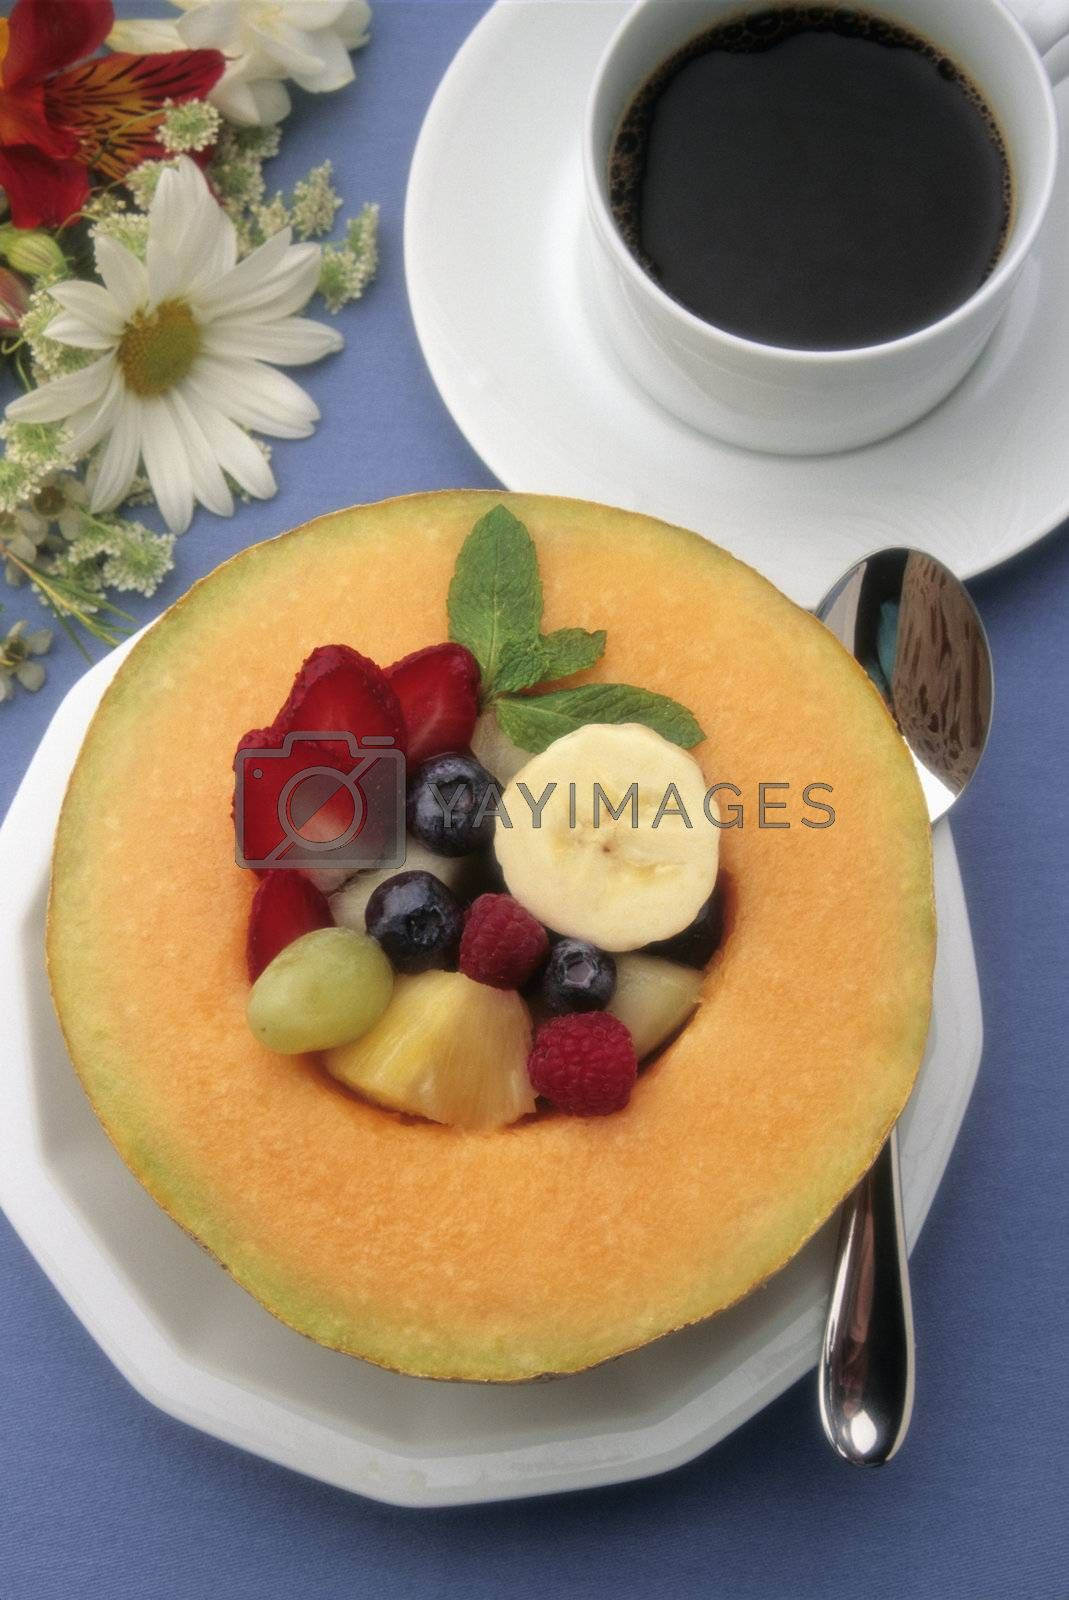 Healthy breakfast  with fresh fruit, coffee and juice on a blue tablecoth